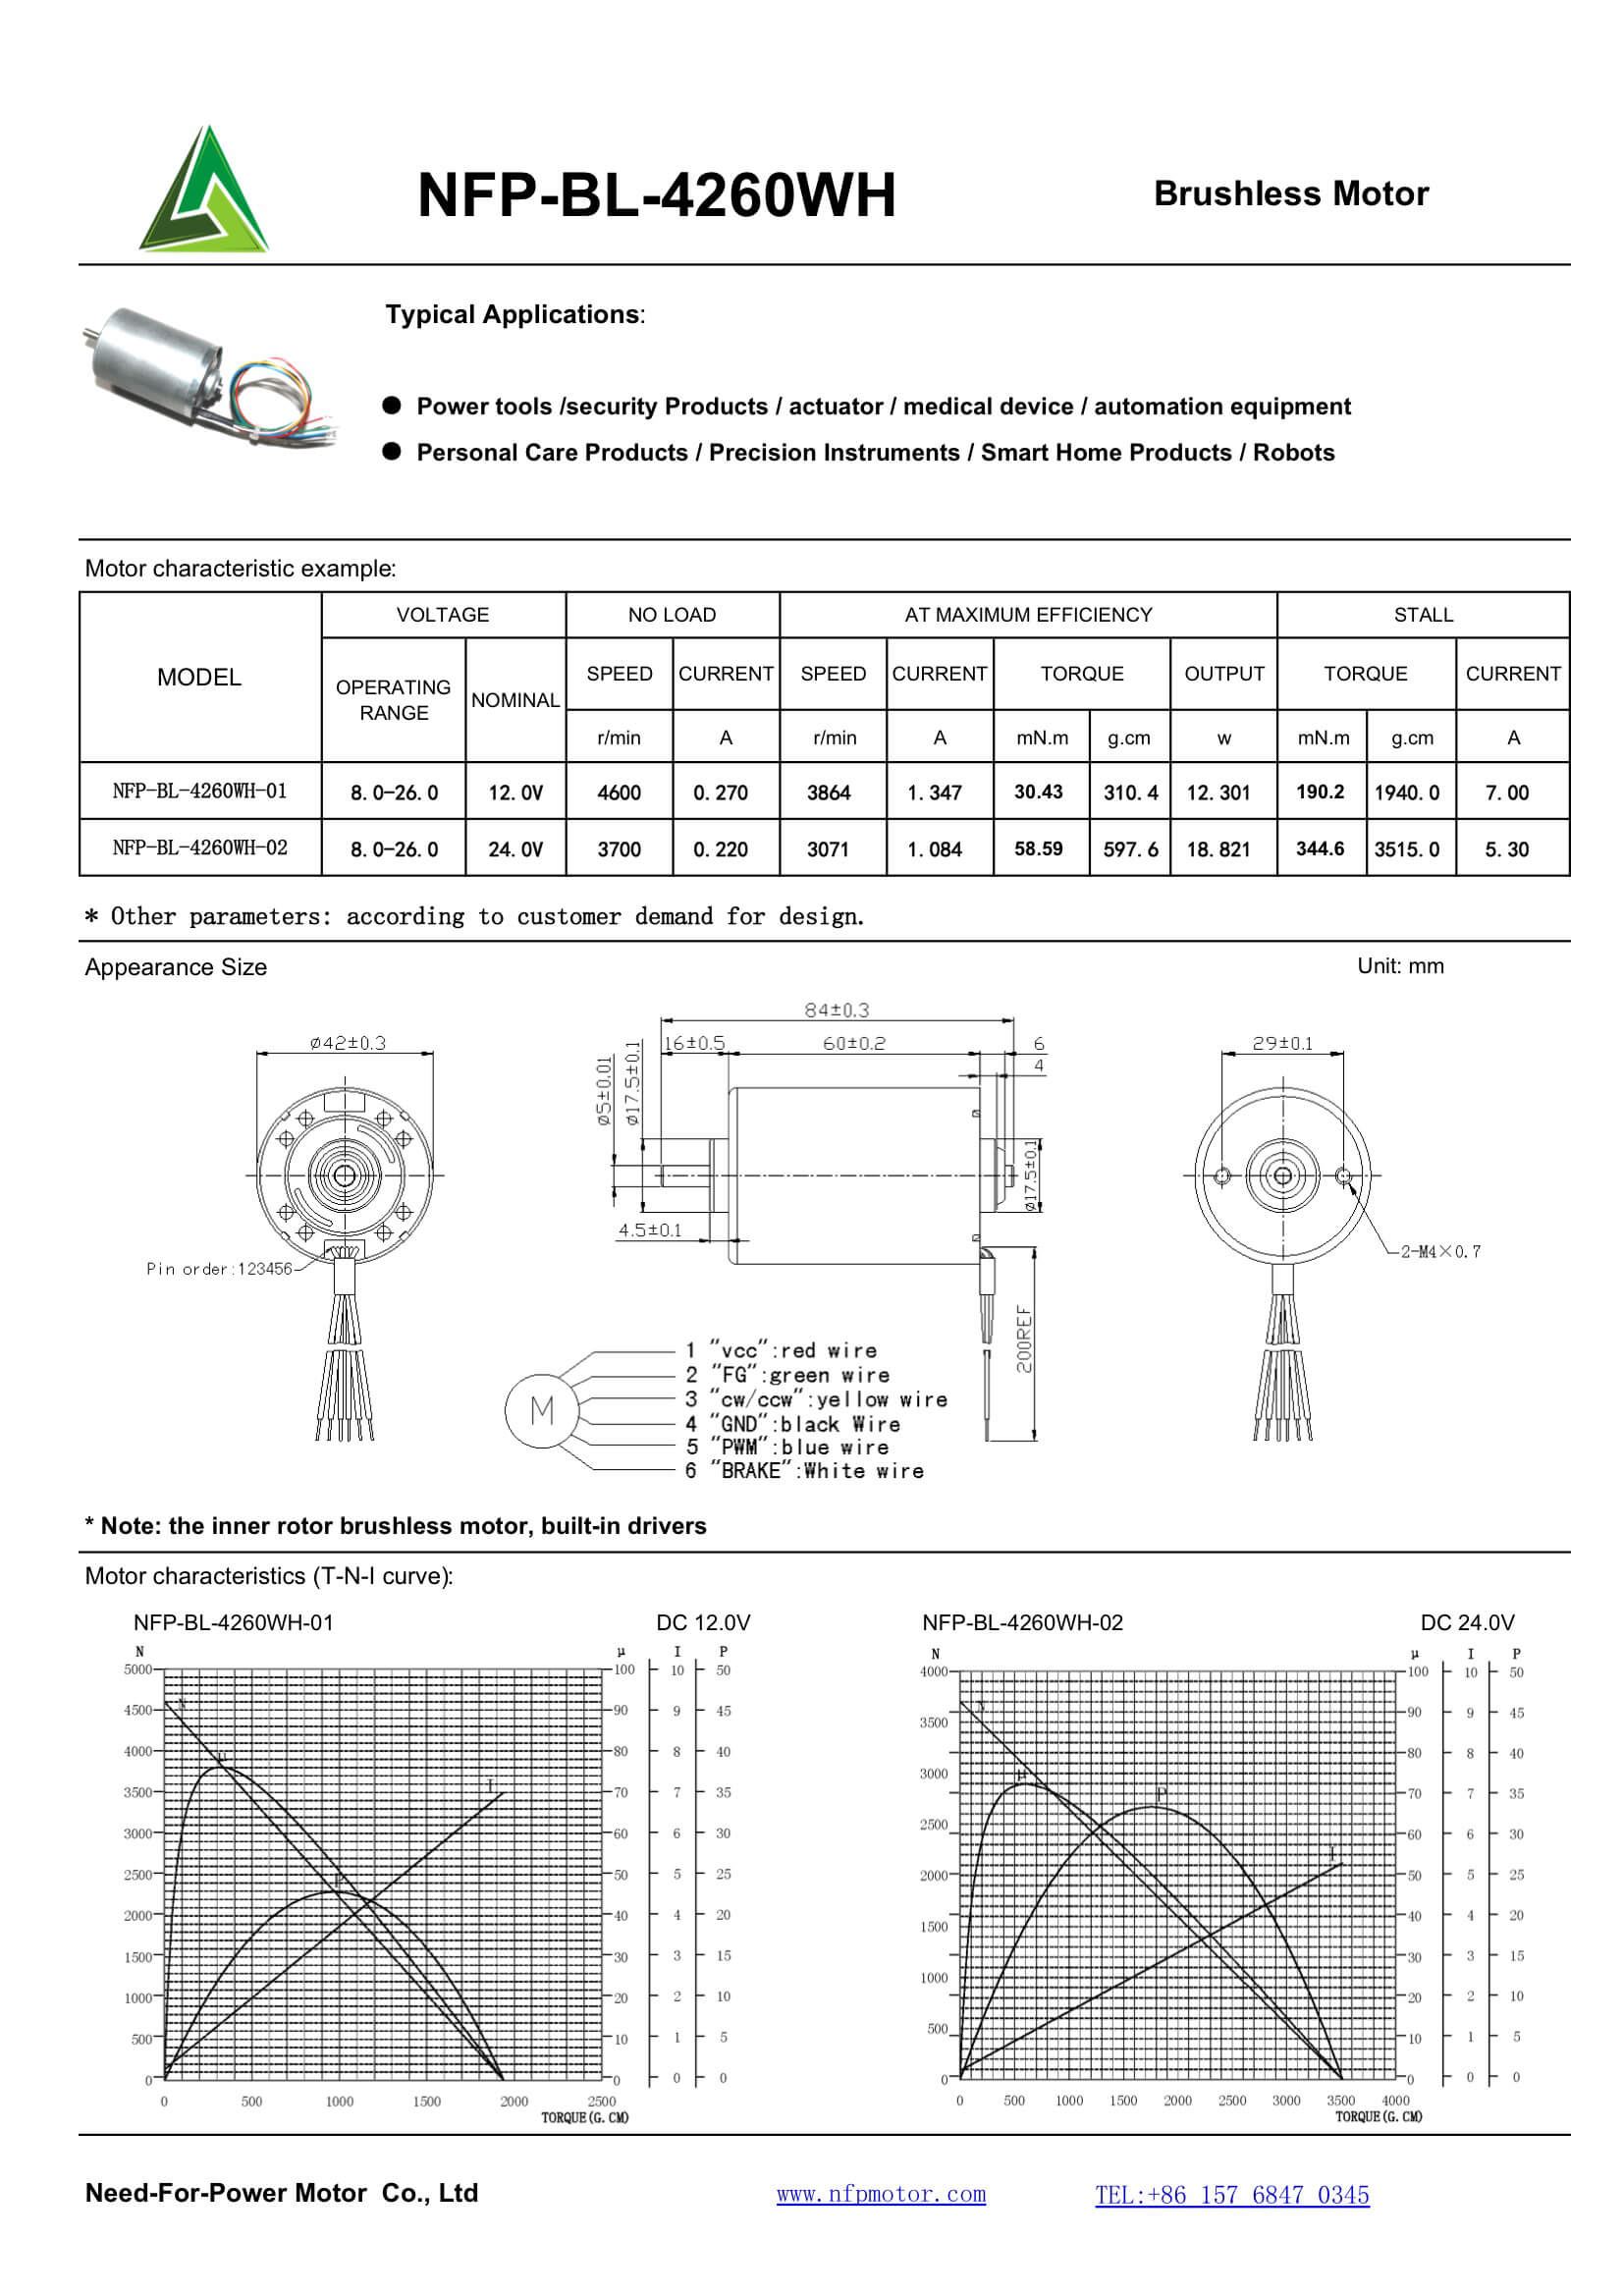 Need For Power Motor Micro Dc Motors Brushless Wiring Diagram Nfp Bl 4260wh